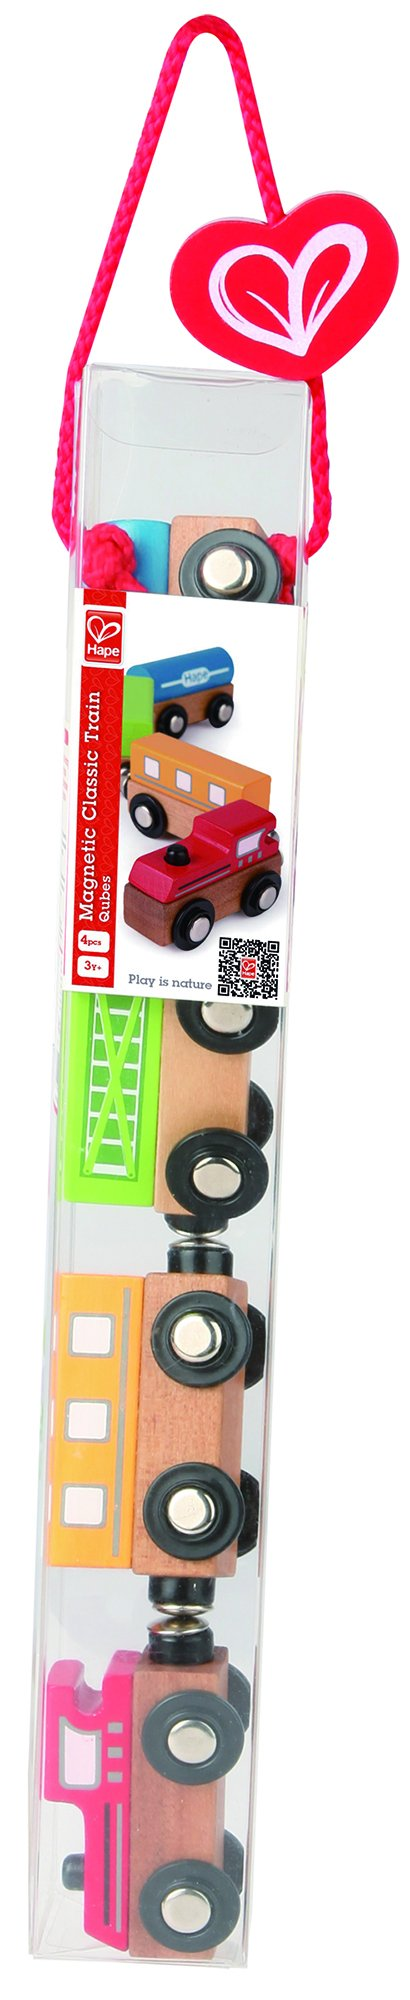 Hape Qubes Wooden Magnetic Classic Train Set